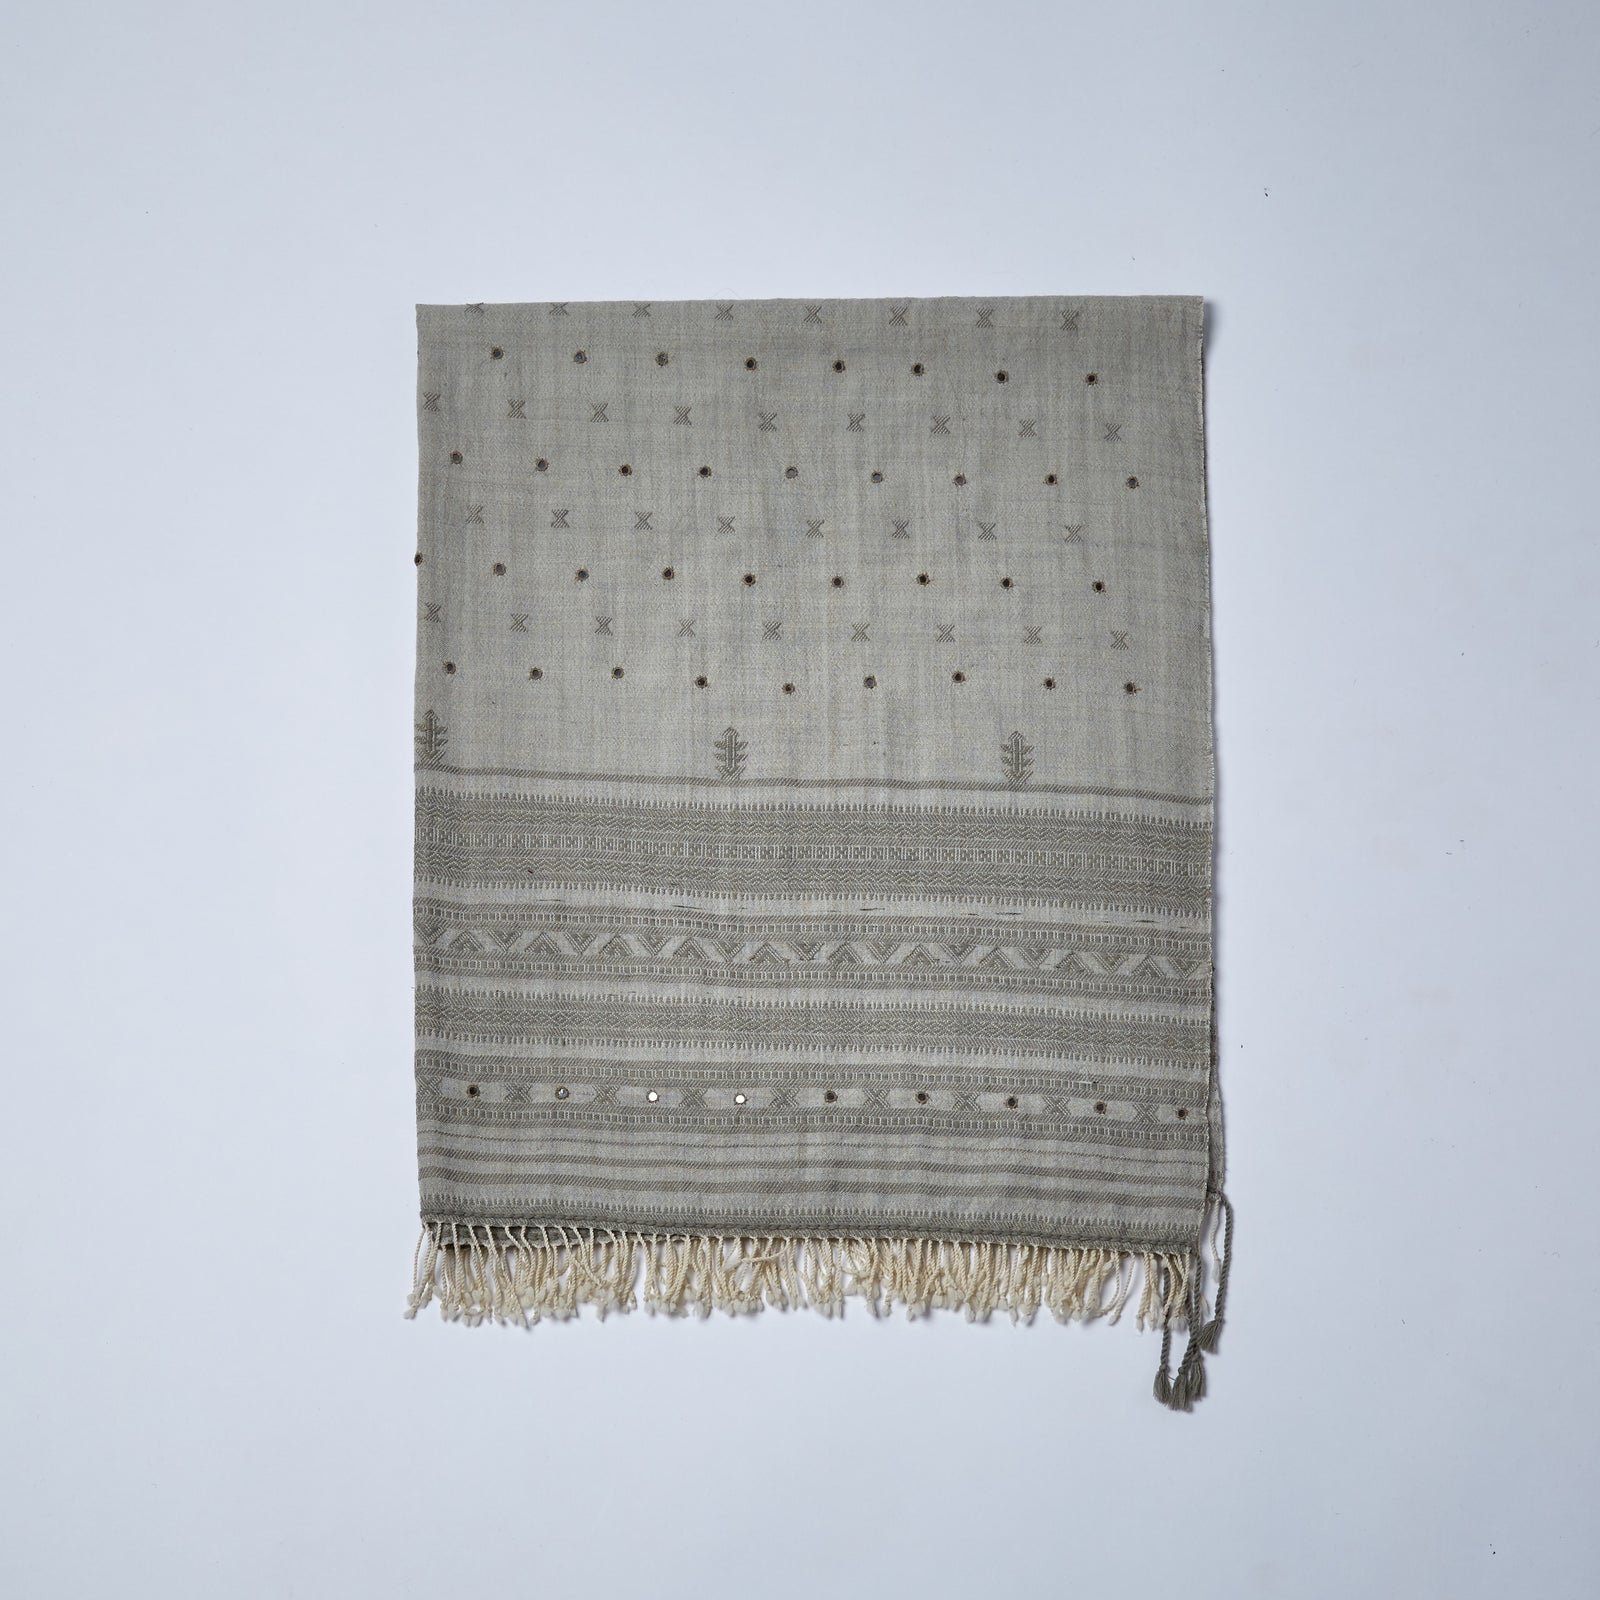 Merino Wool Shawl. Rajani has many similarities to her sister Pari, she is a shade paler but shares much of the the same style, with delicately stitched tiny mirrors adorning the fabric and beautiful hand woven motifs with linear designs at each end of the shawl.